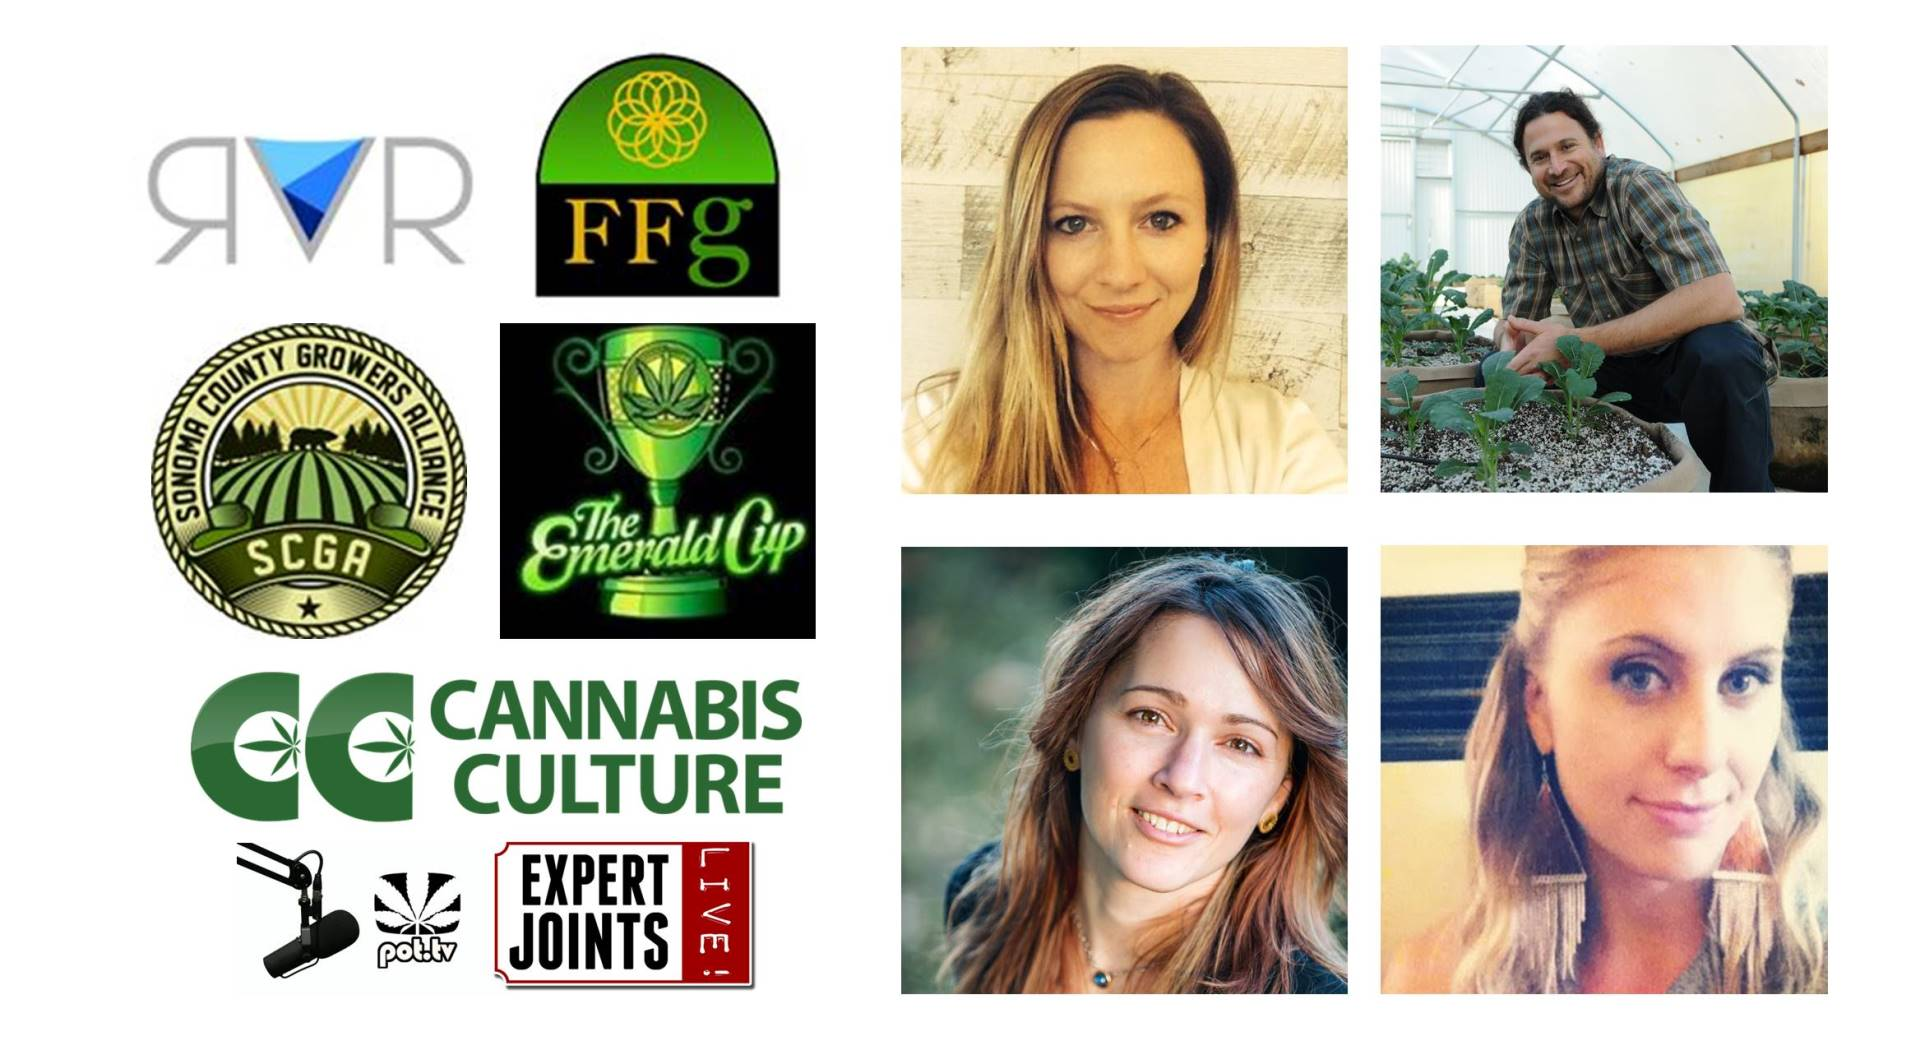 Expert Joints LIVE! Tales From The Triangle Jonathan Valdman Forever Flowering Greenhouses, Taylor Blake The Emerald Cup, Tawnie Logan Sonoma County Growers Alliance, Lauren Fraser RVR River Collective, The Emerald Triangle, Lift Expo Vancouver, Nukem, Cody Van Gogh, Cannabis Culture's 512 Beatty St